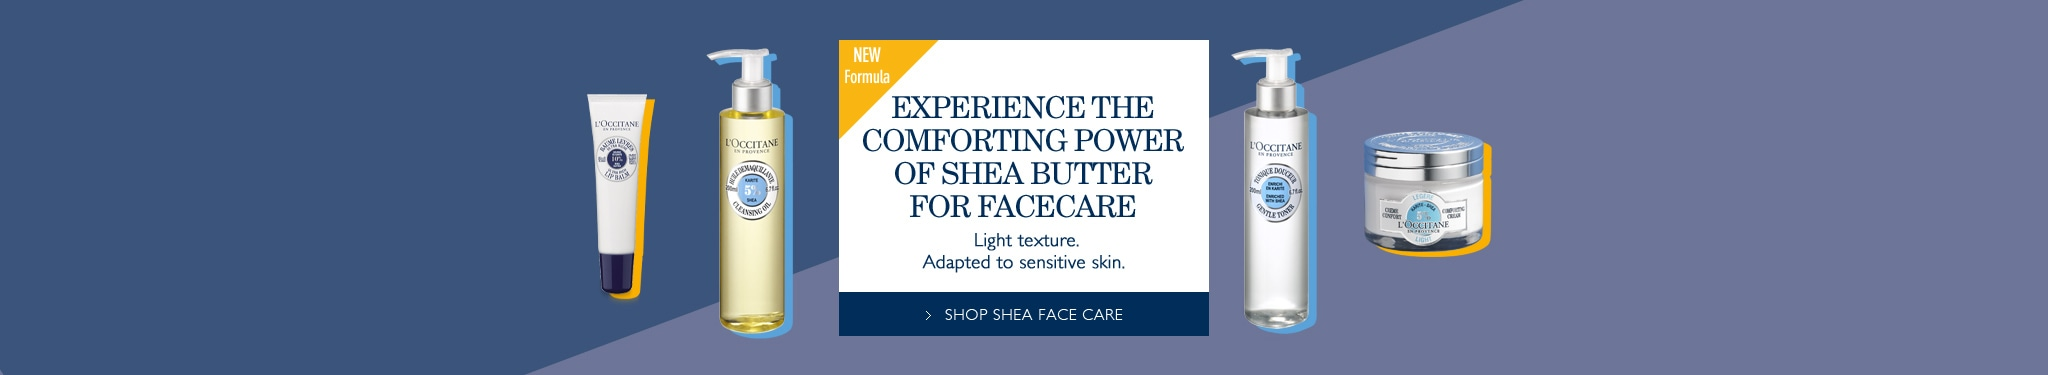 EXPERIENCE THE COMFORTING POWER OF SHEA BUTTER FOR FACE CARE